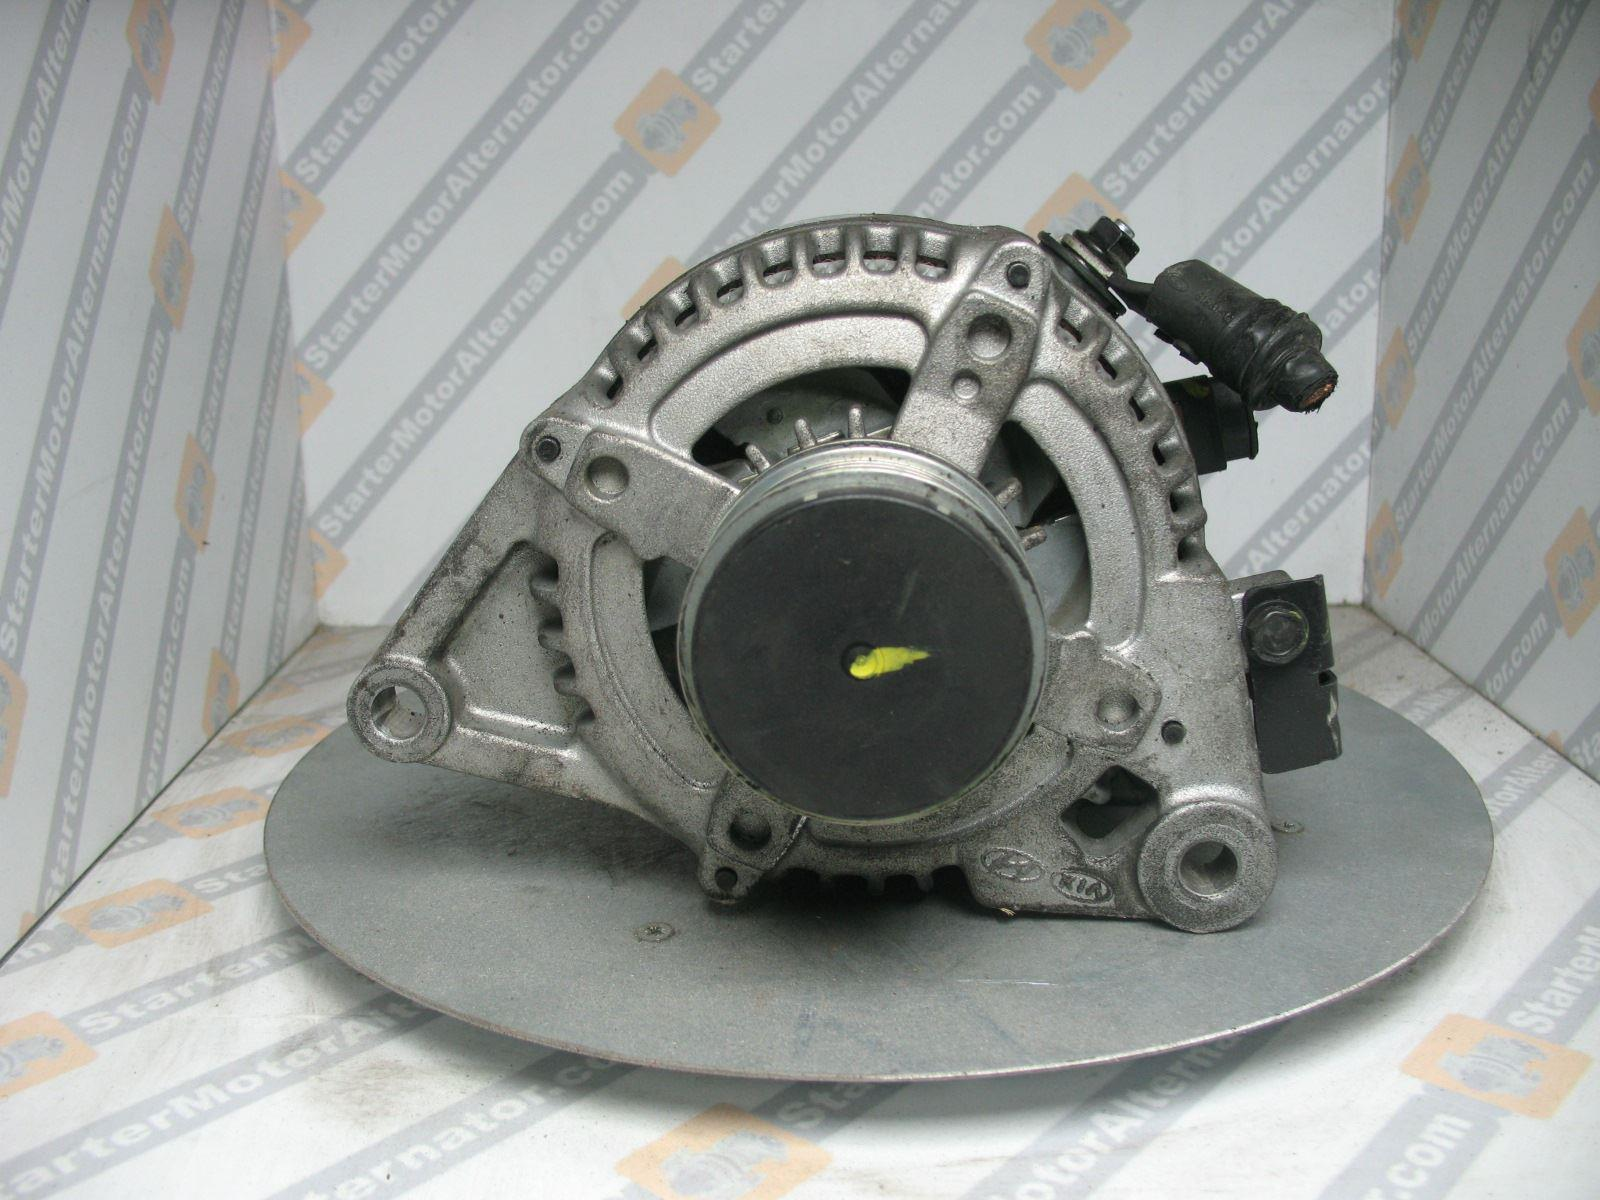 XIK4013 Alternator For Hyundai / Kia